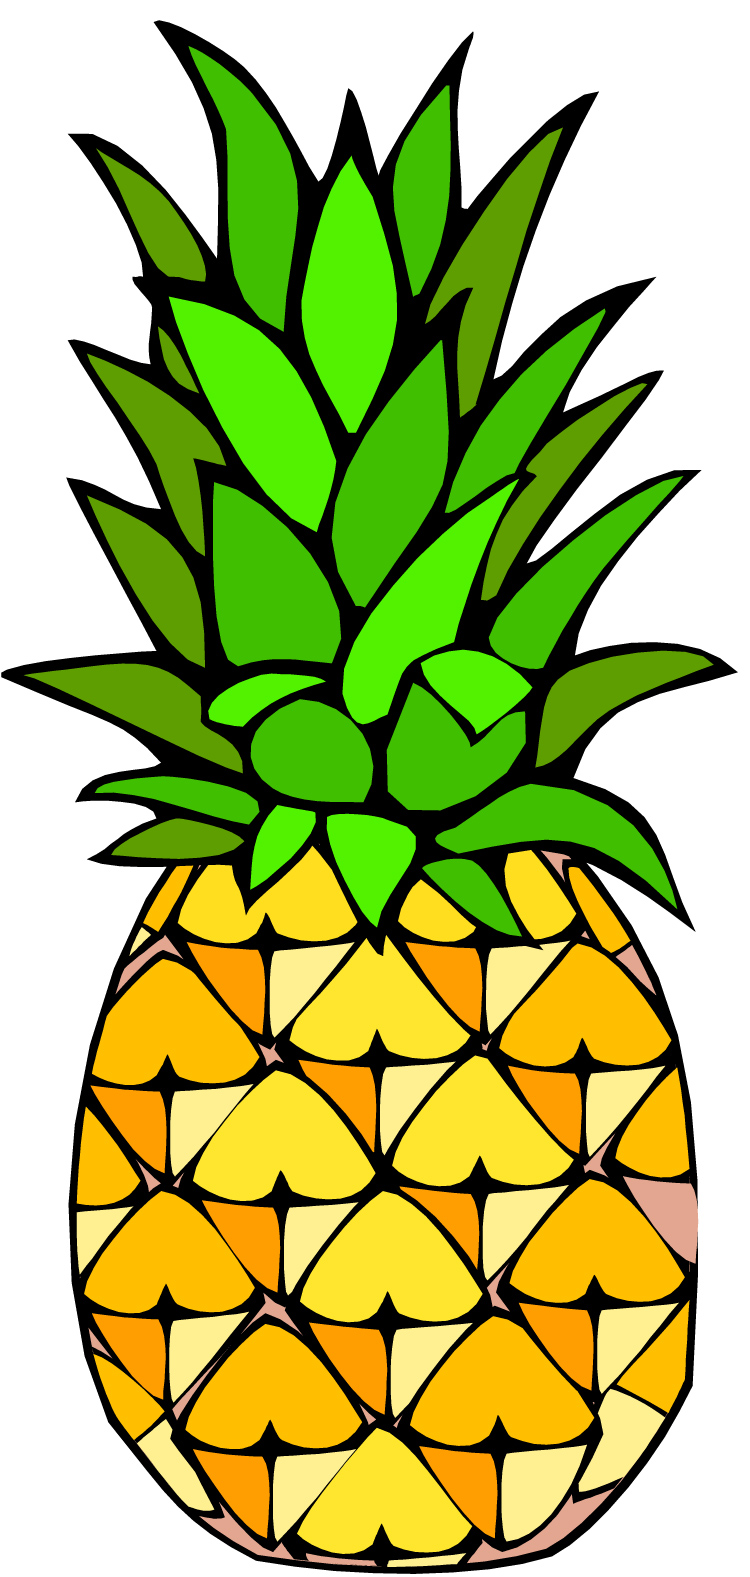 Pineapple Stock Illustrations  Dreamstime